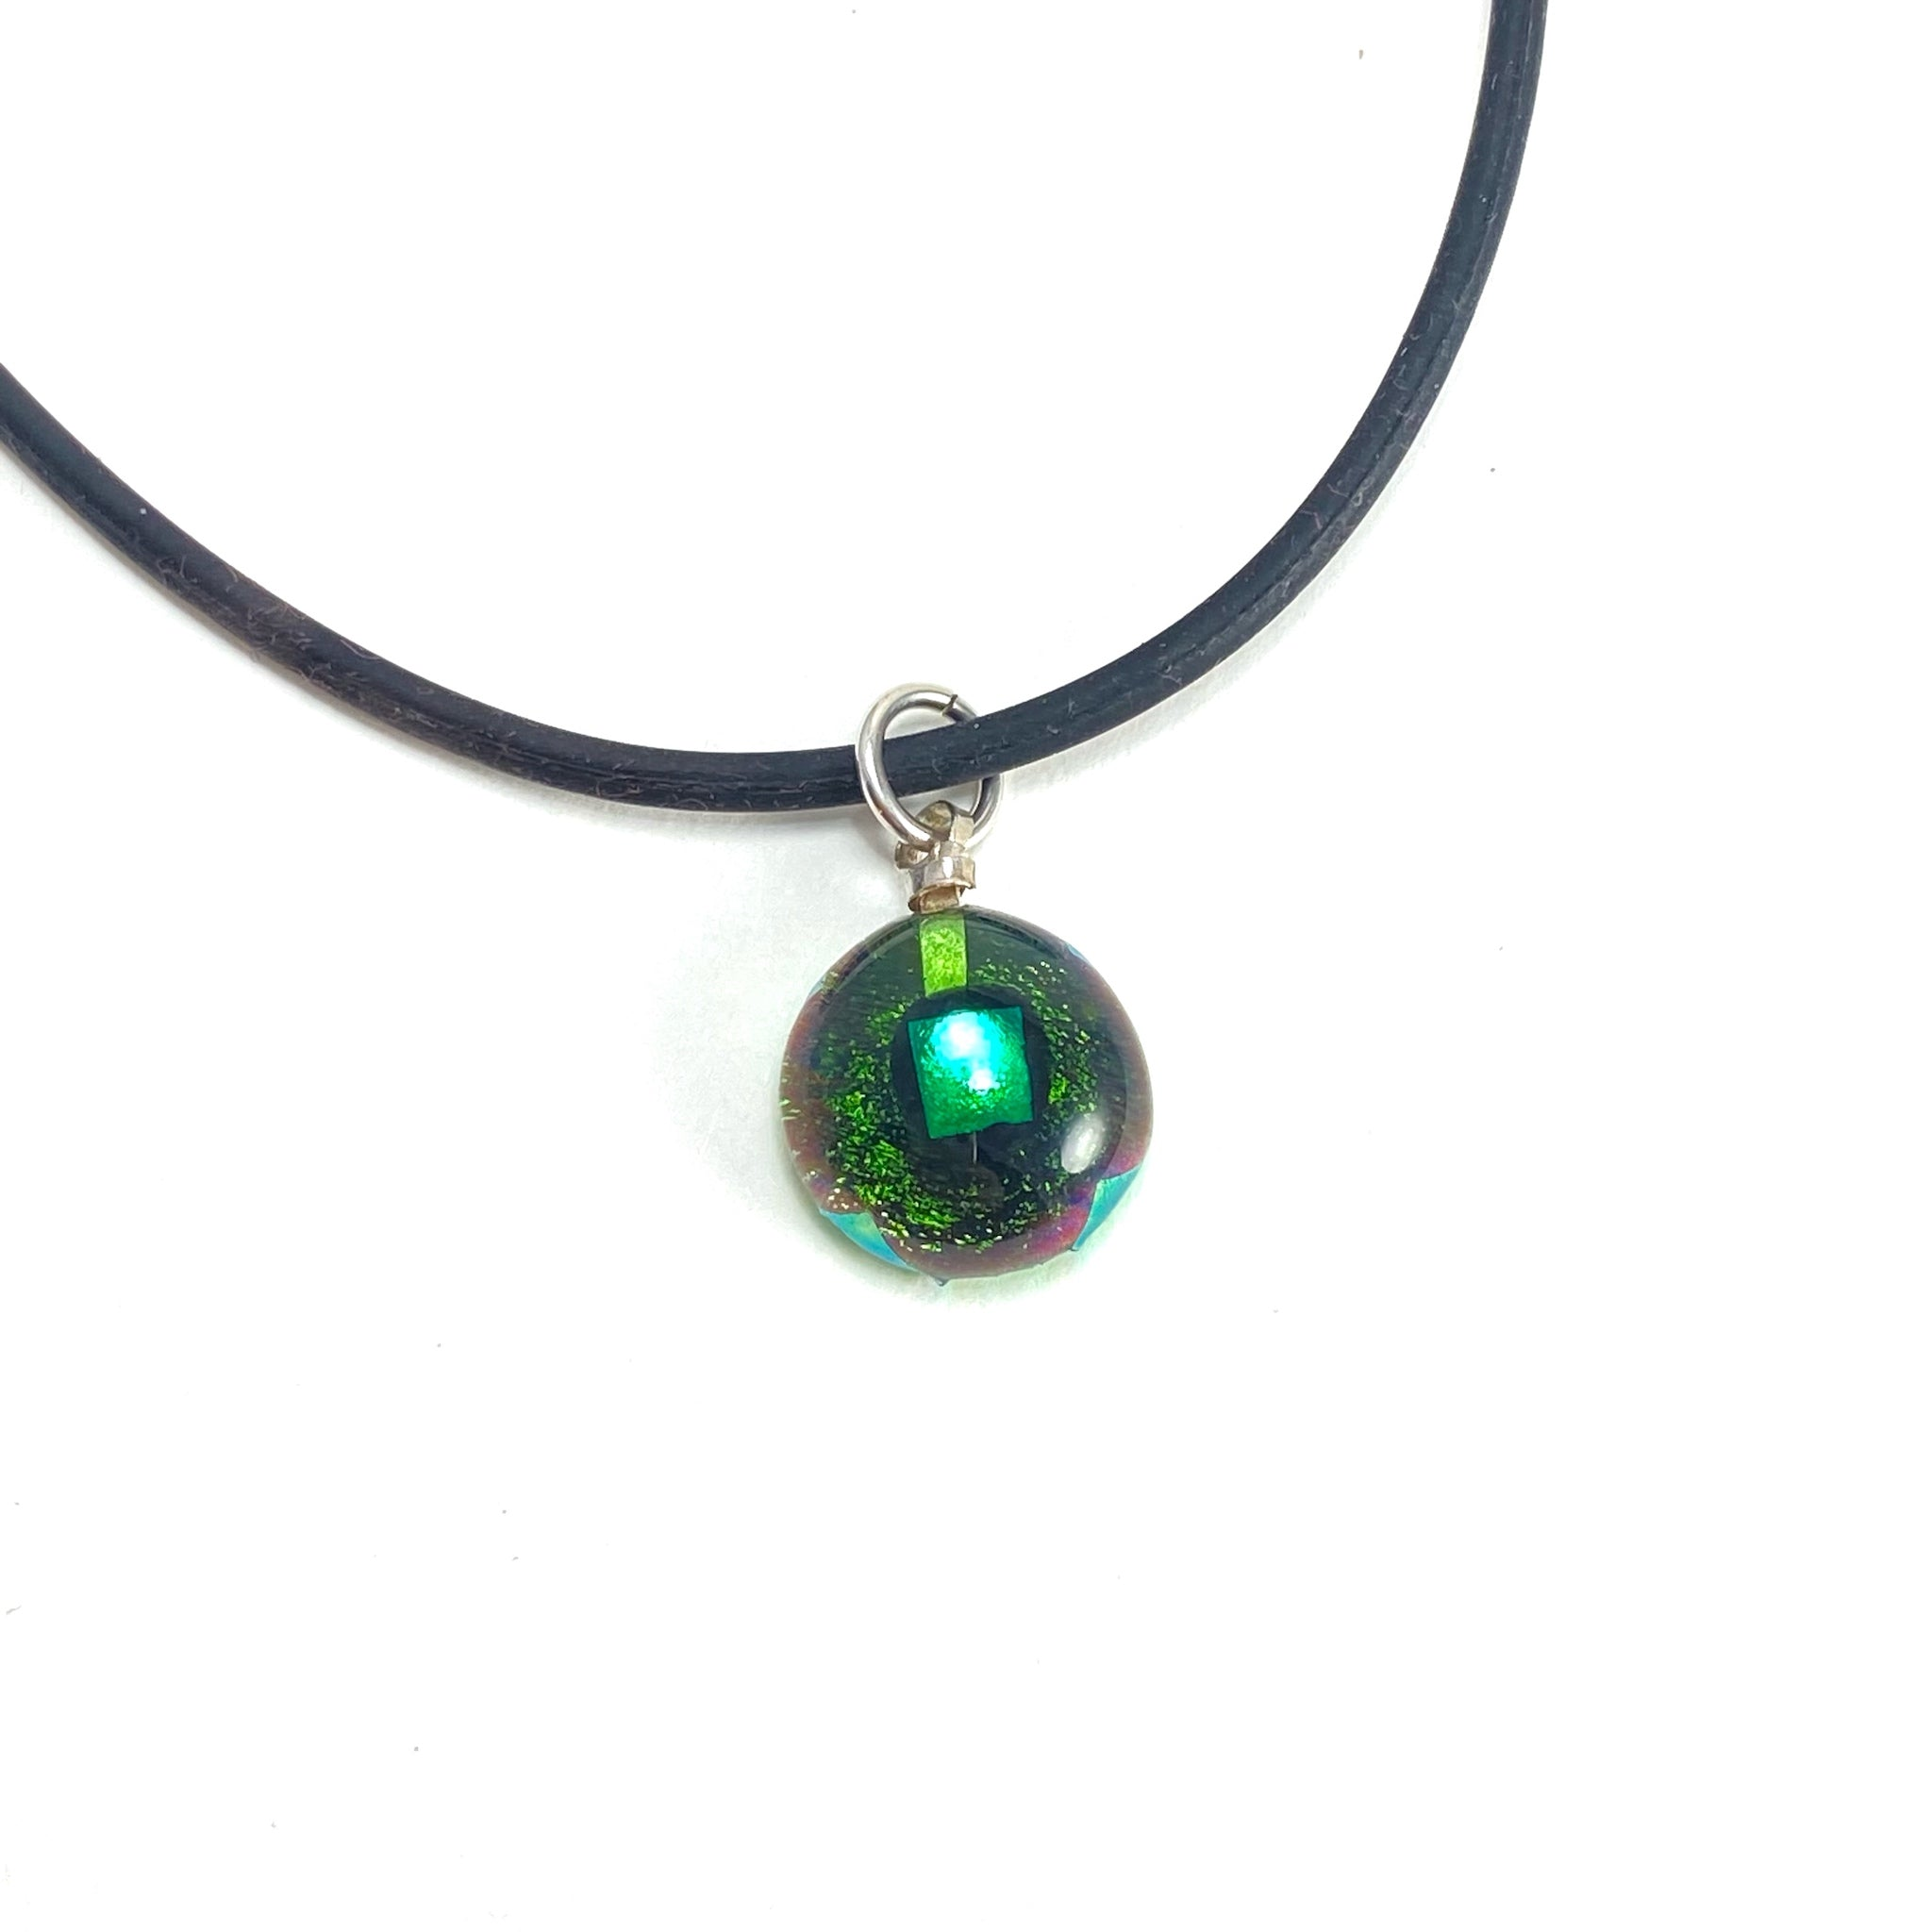 forest green ball necklace, fused glass, glass jewelry, glass and silver jewelry, handmade, handcrafted, American Craft, hand fabricated jewelry, hand fabricated jewellery,  Athen, Georgia, colorful jewelry, sparkle, bullseye glass, dichroic glass, art jewelry